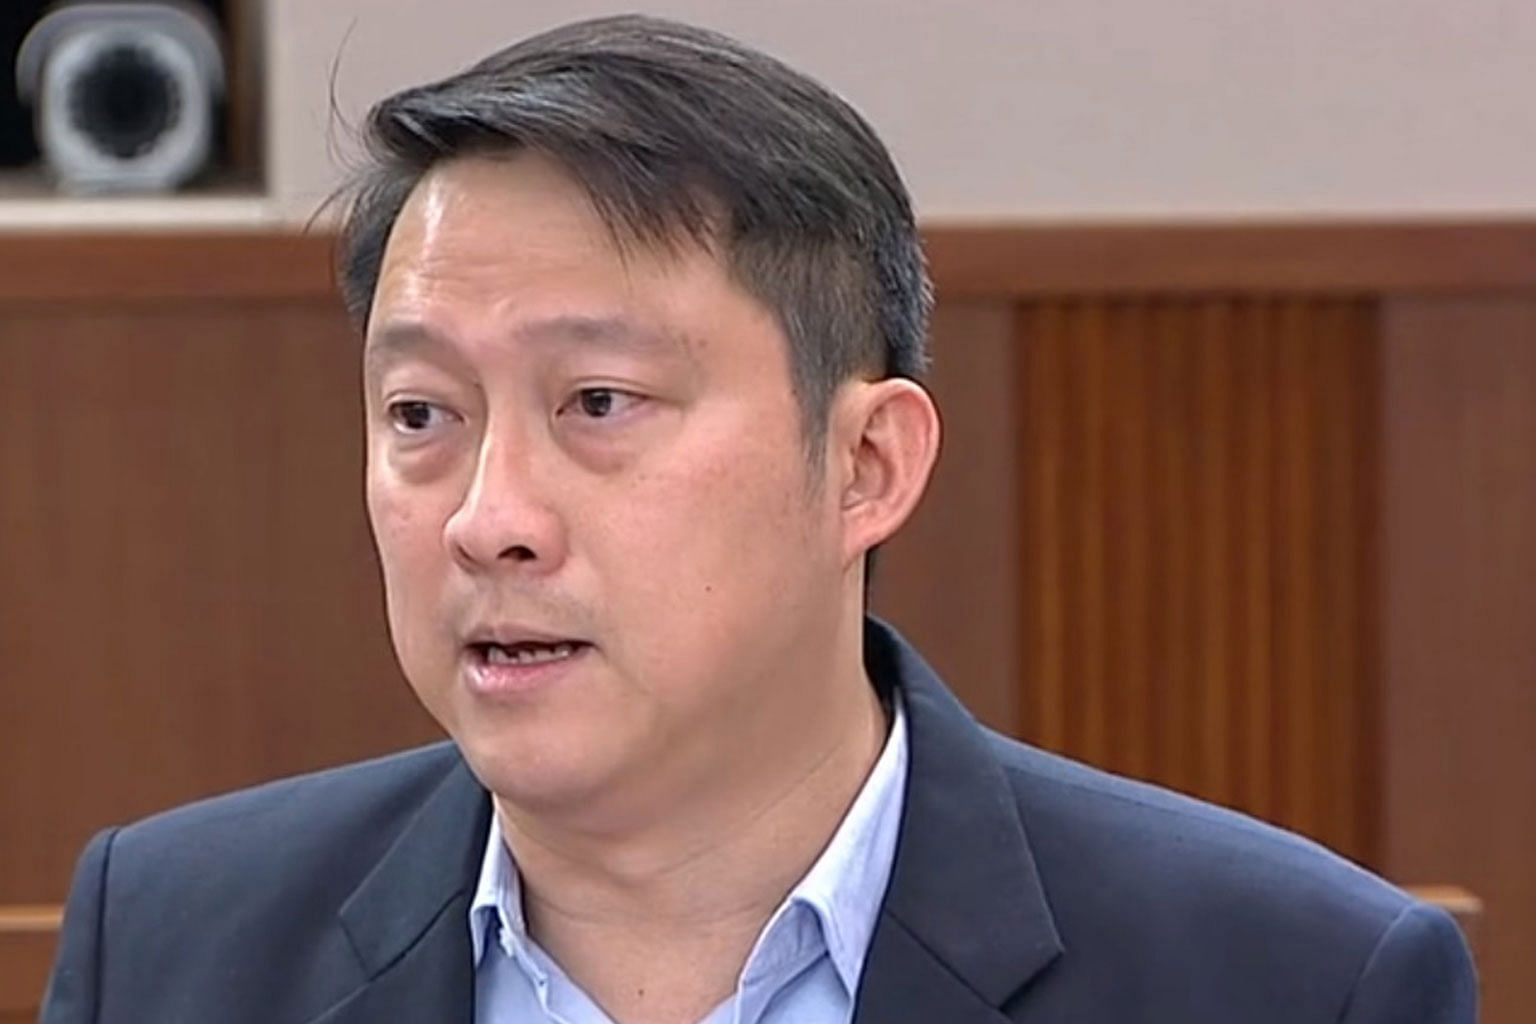 Banning personal mobility devices from footpaths and restricting their use to roads would pose a greater risk to riders as well as motorists, said Senior Minister of State for Transport Lam Pin Min. He noted that the speed limit for PMDs and bicycles